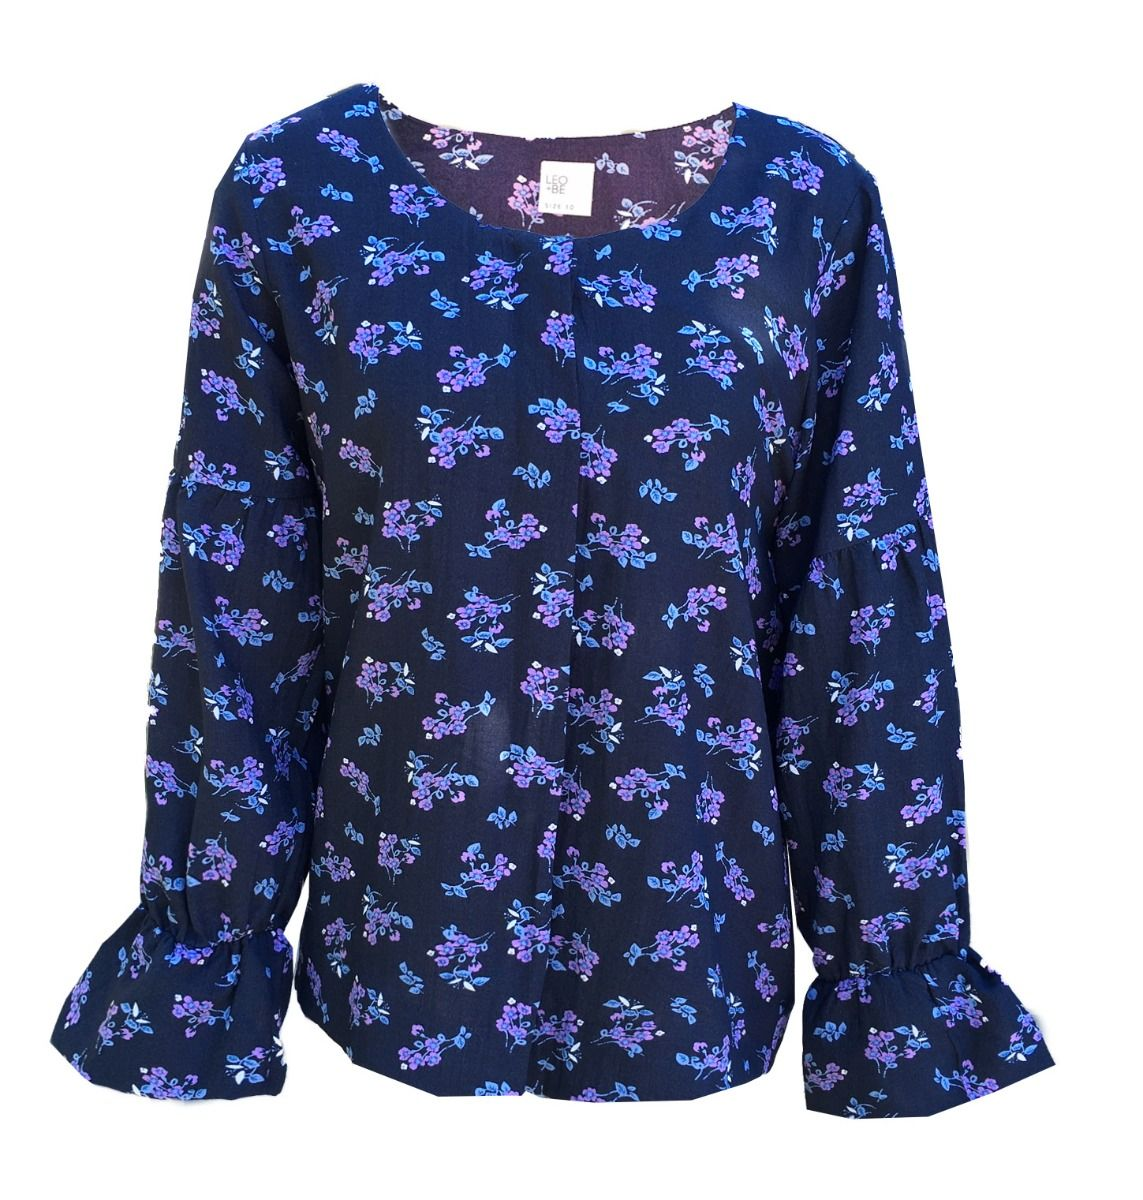 ac1ccb9e4c54dc Trickster Top (Navy) - Labels-Leo+Be   Just Looking - Leo+Be W19